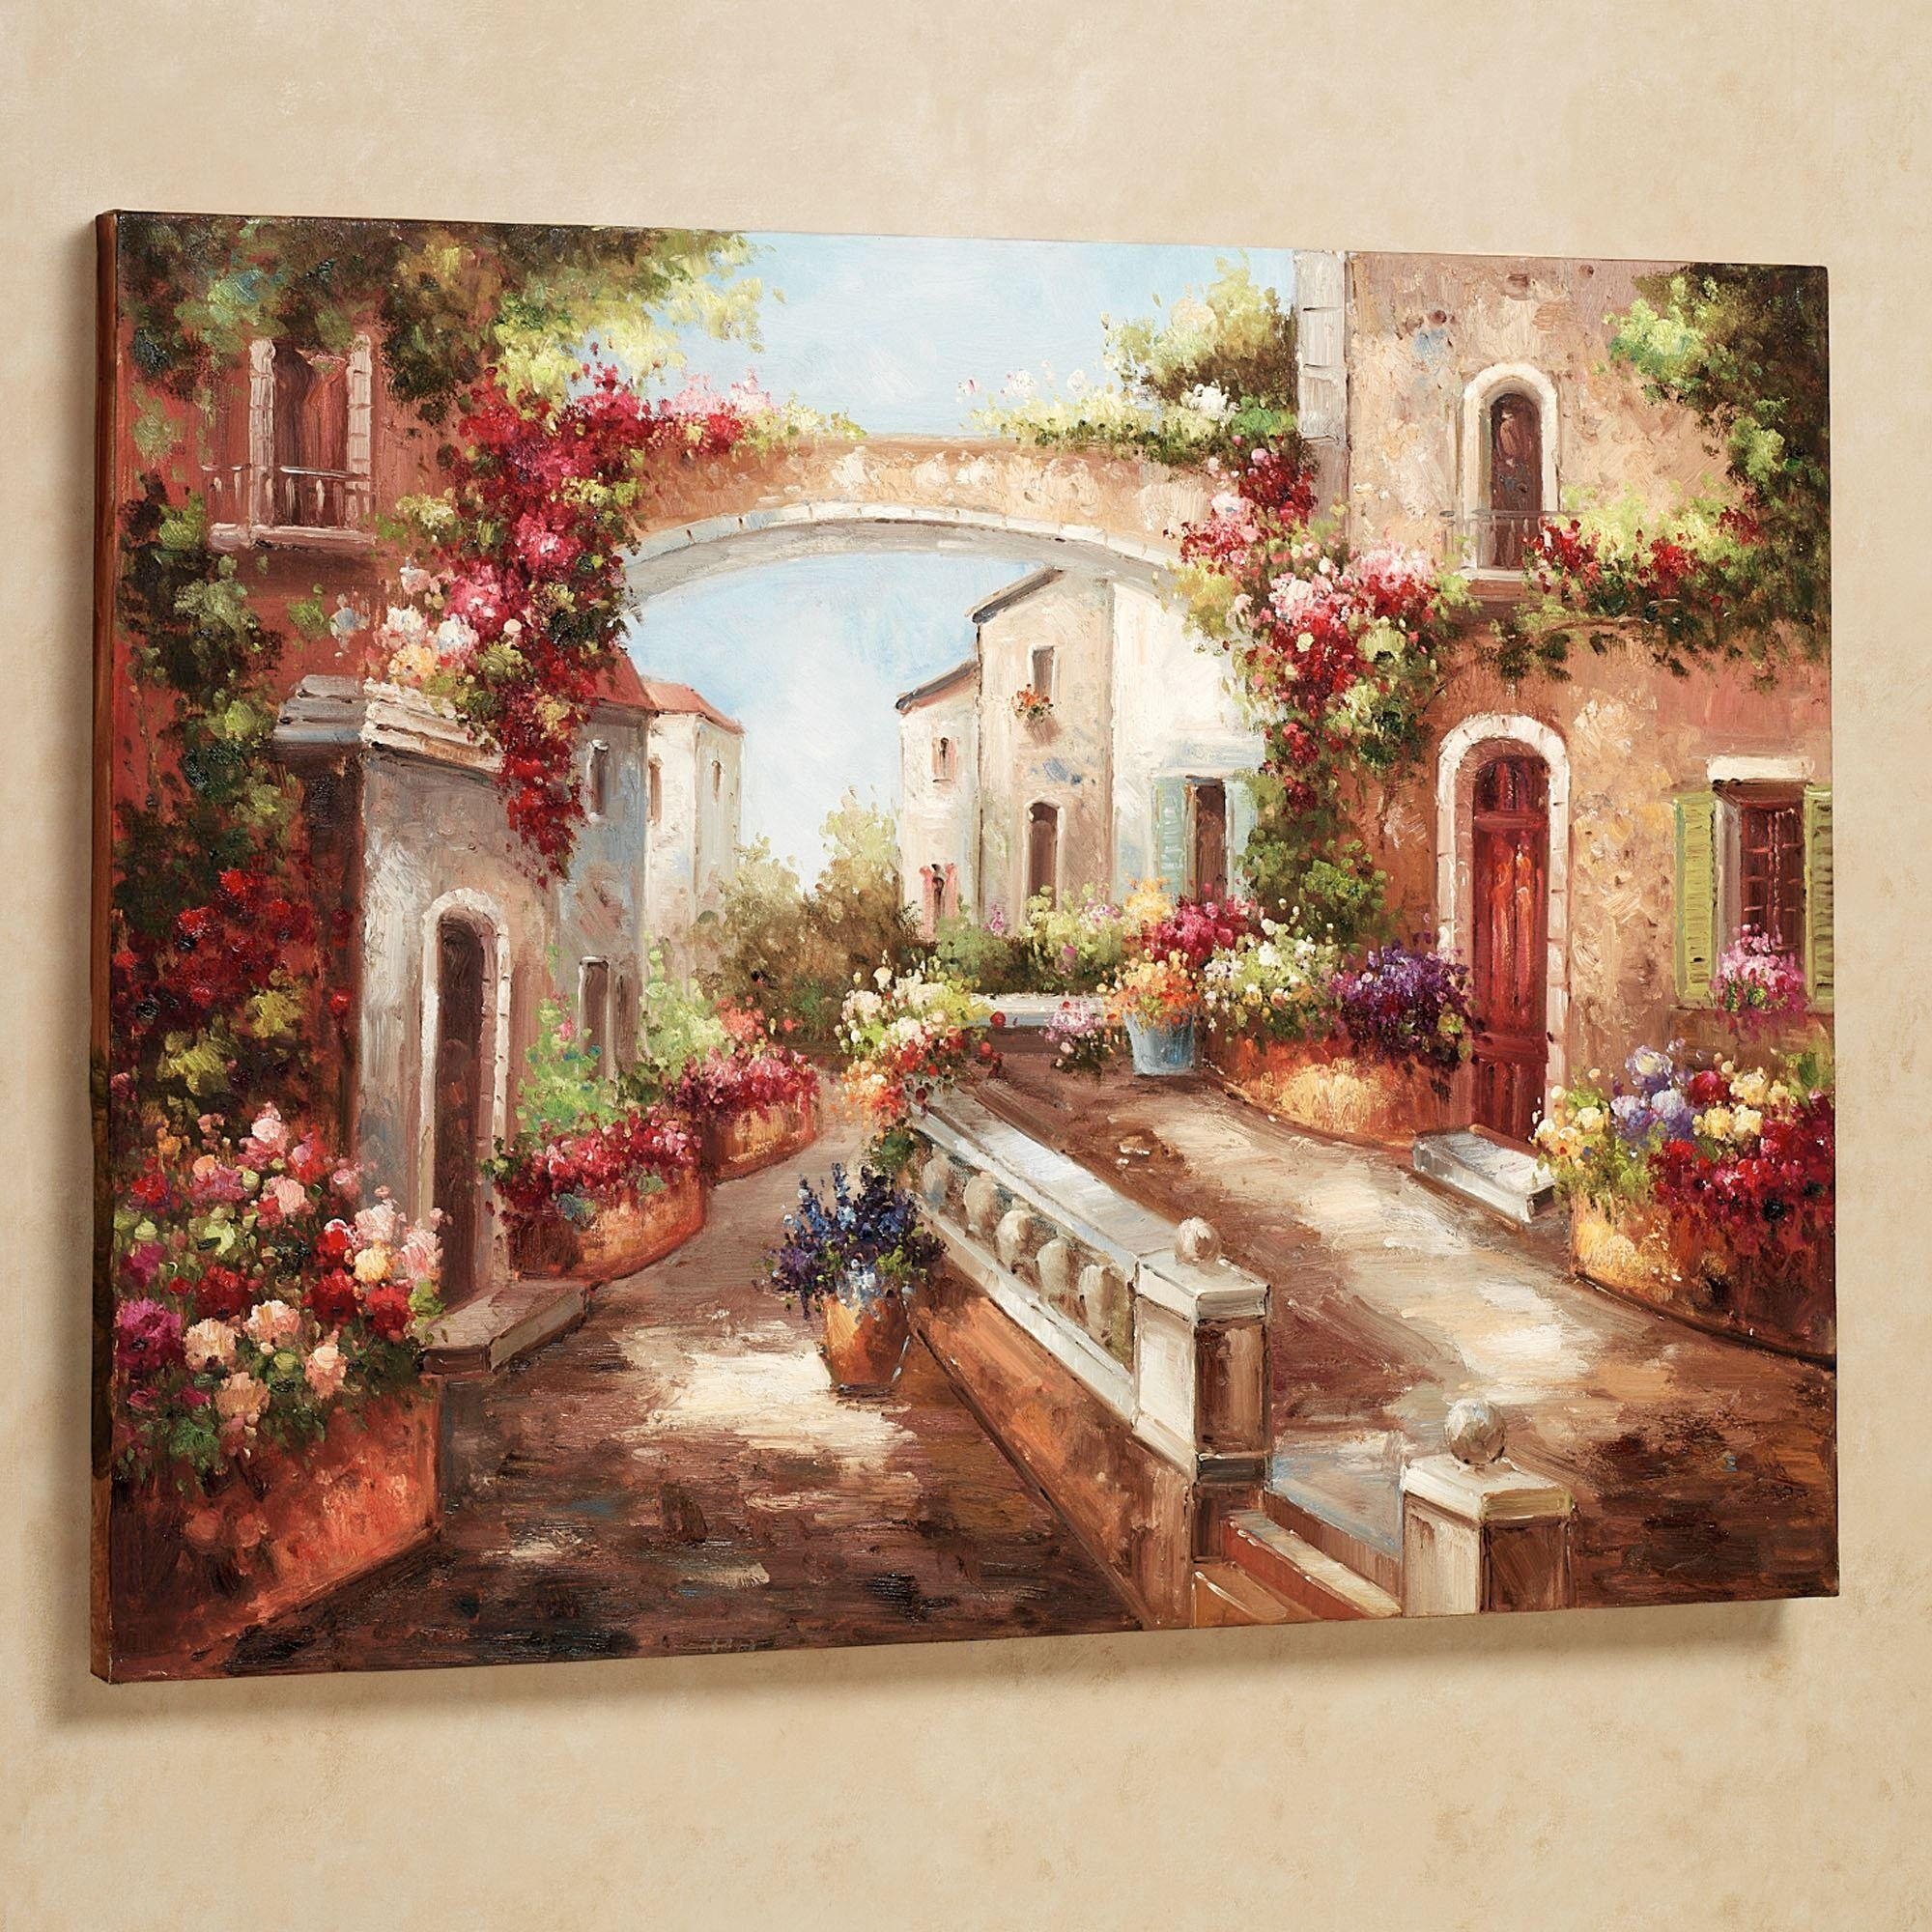 Zspmed Of Tuscan Wall Art Lovely For Your Home Decor Ideas With With Tuscan Wall Art Decor (Photo 5 of 20)